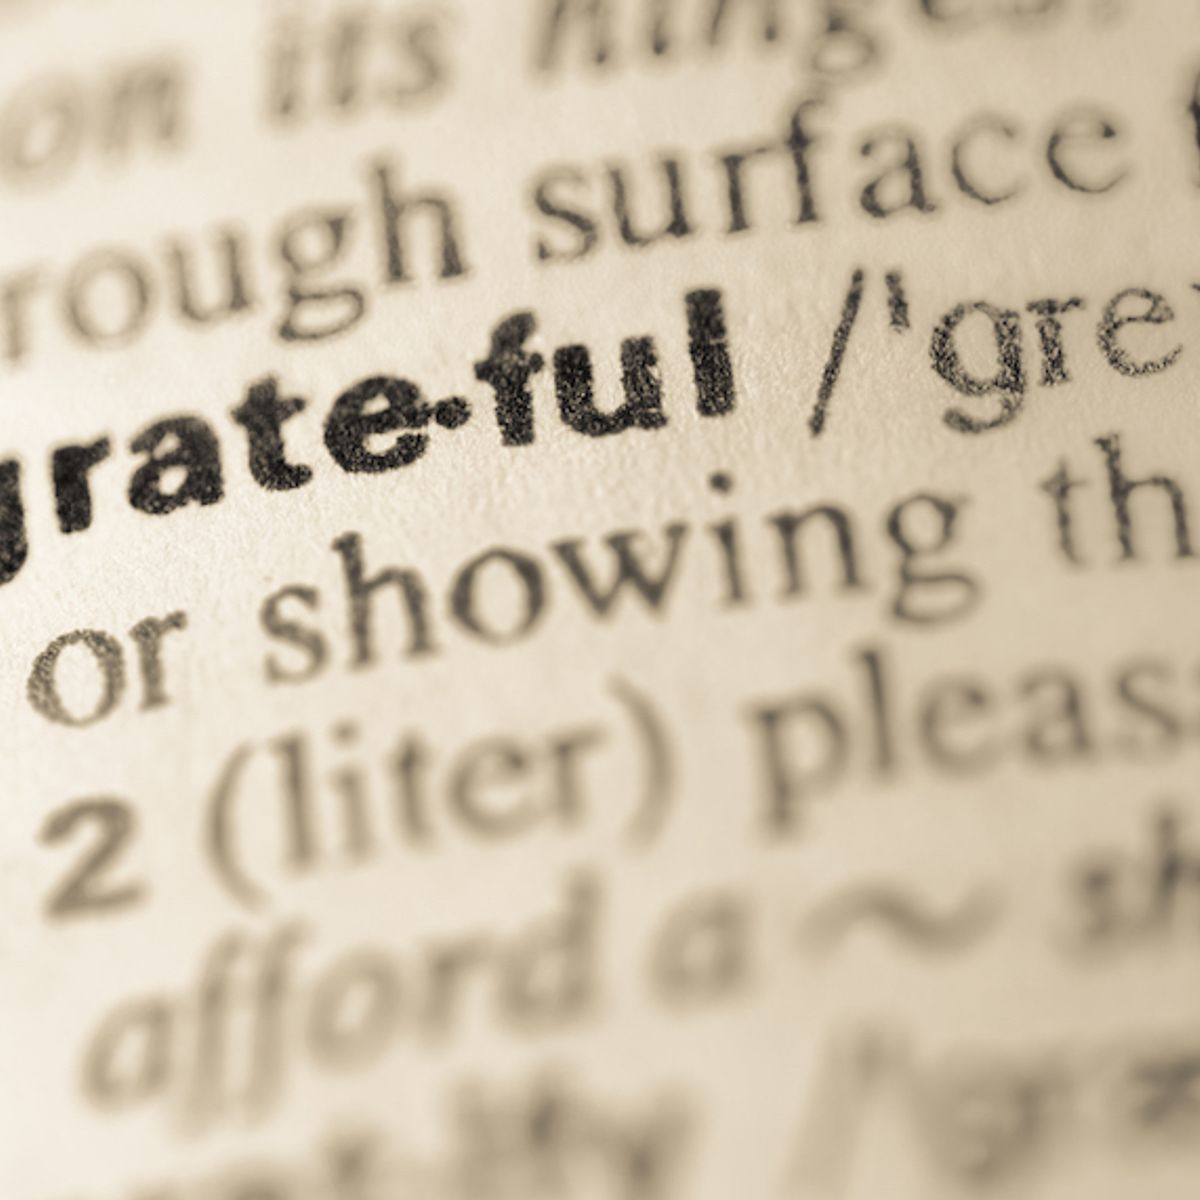 Are you as grateful as you deserve to be?